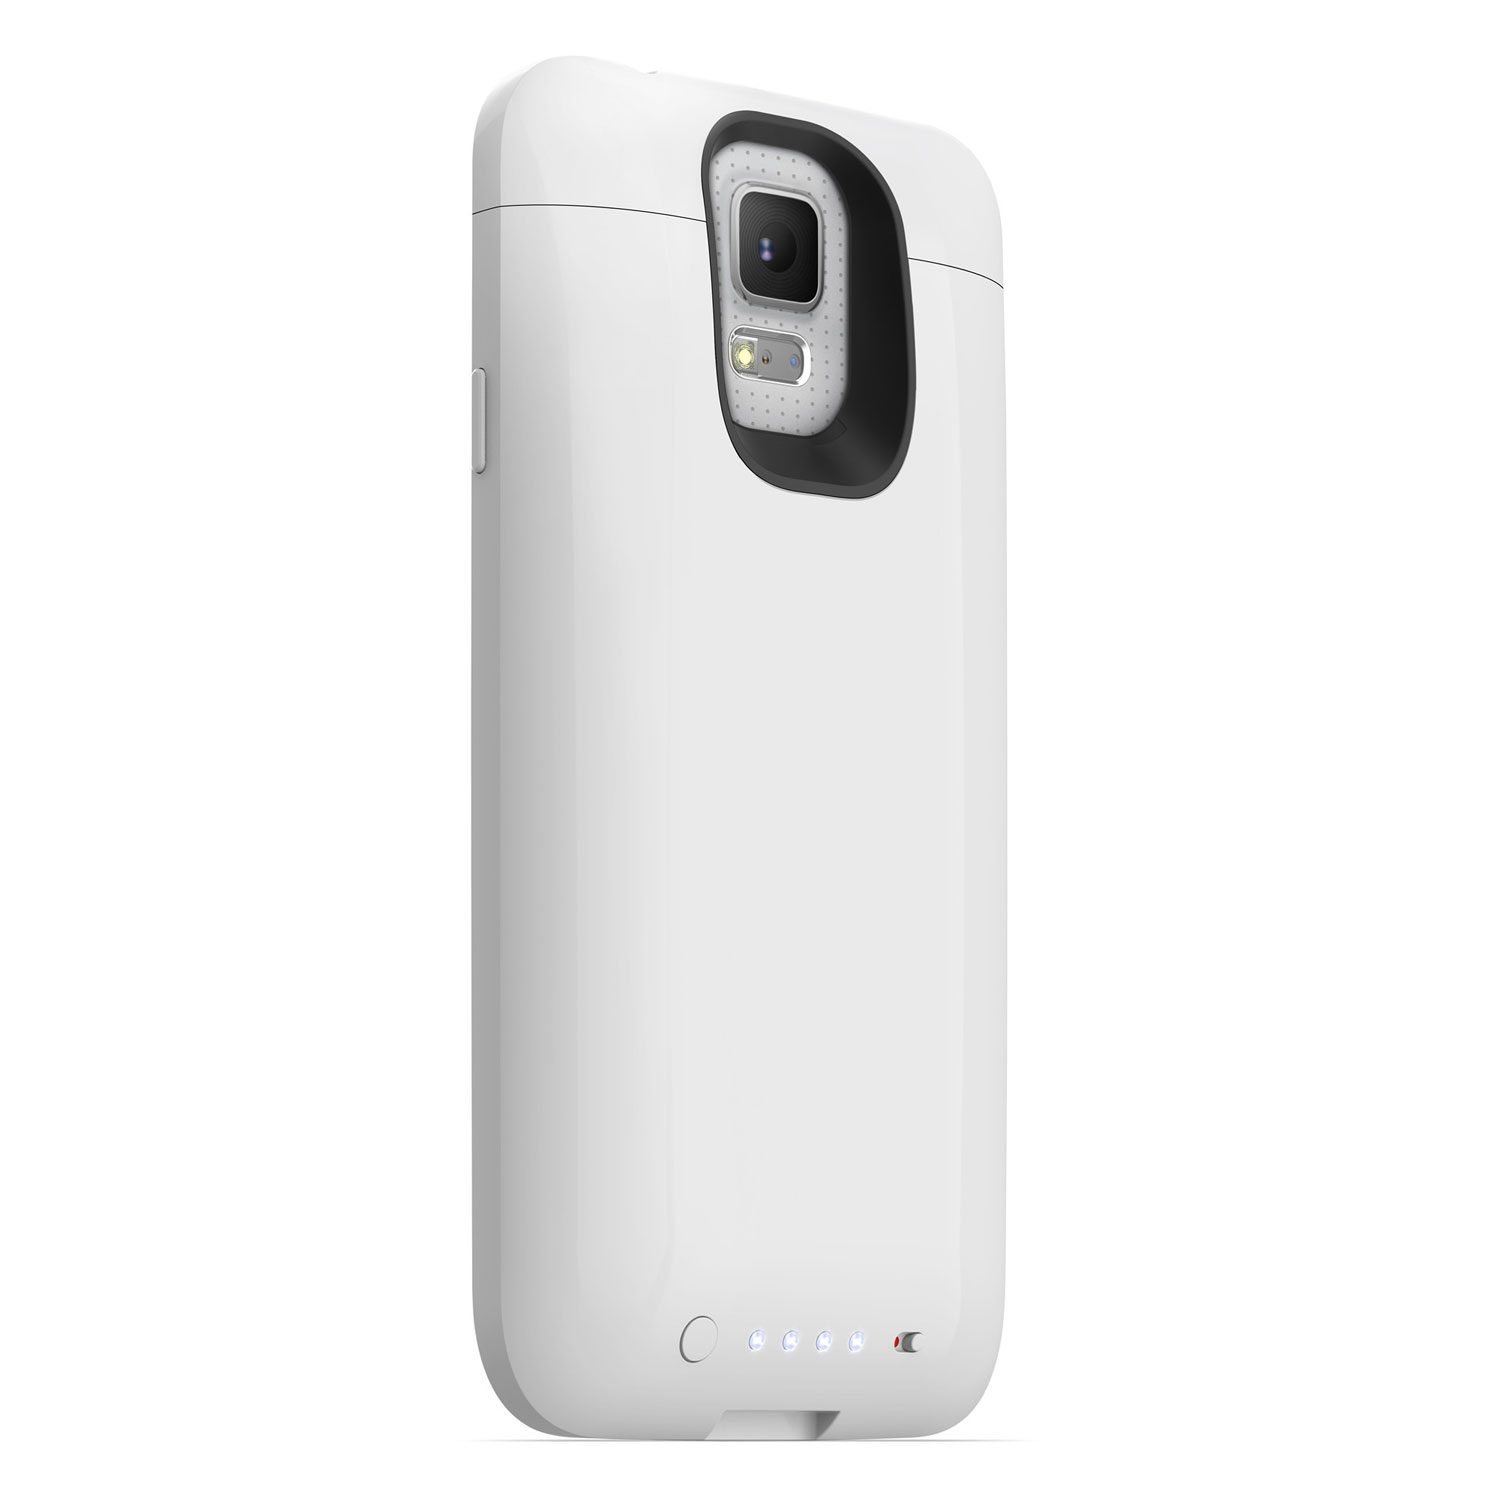 Mophie Galaxy S5 Juice Pack - White